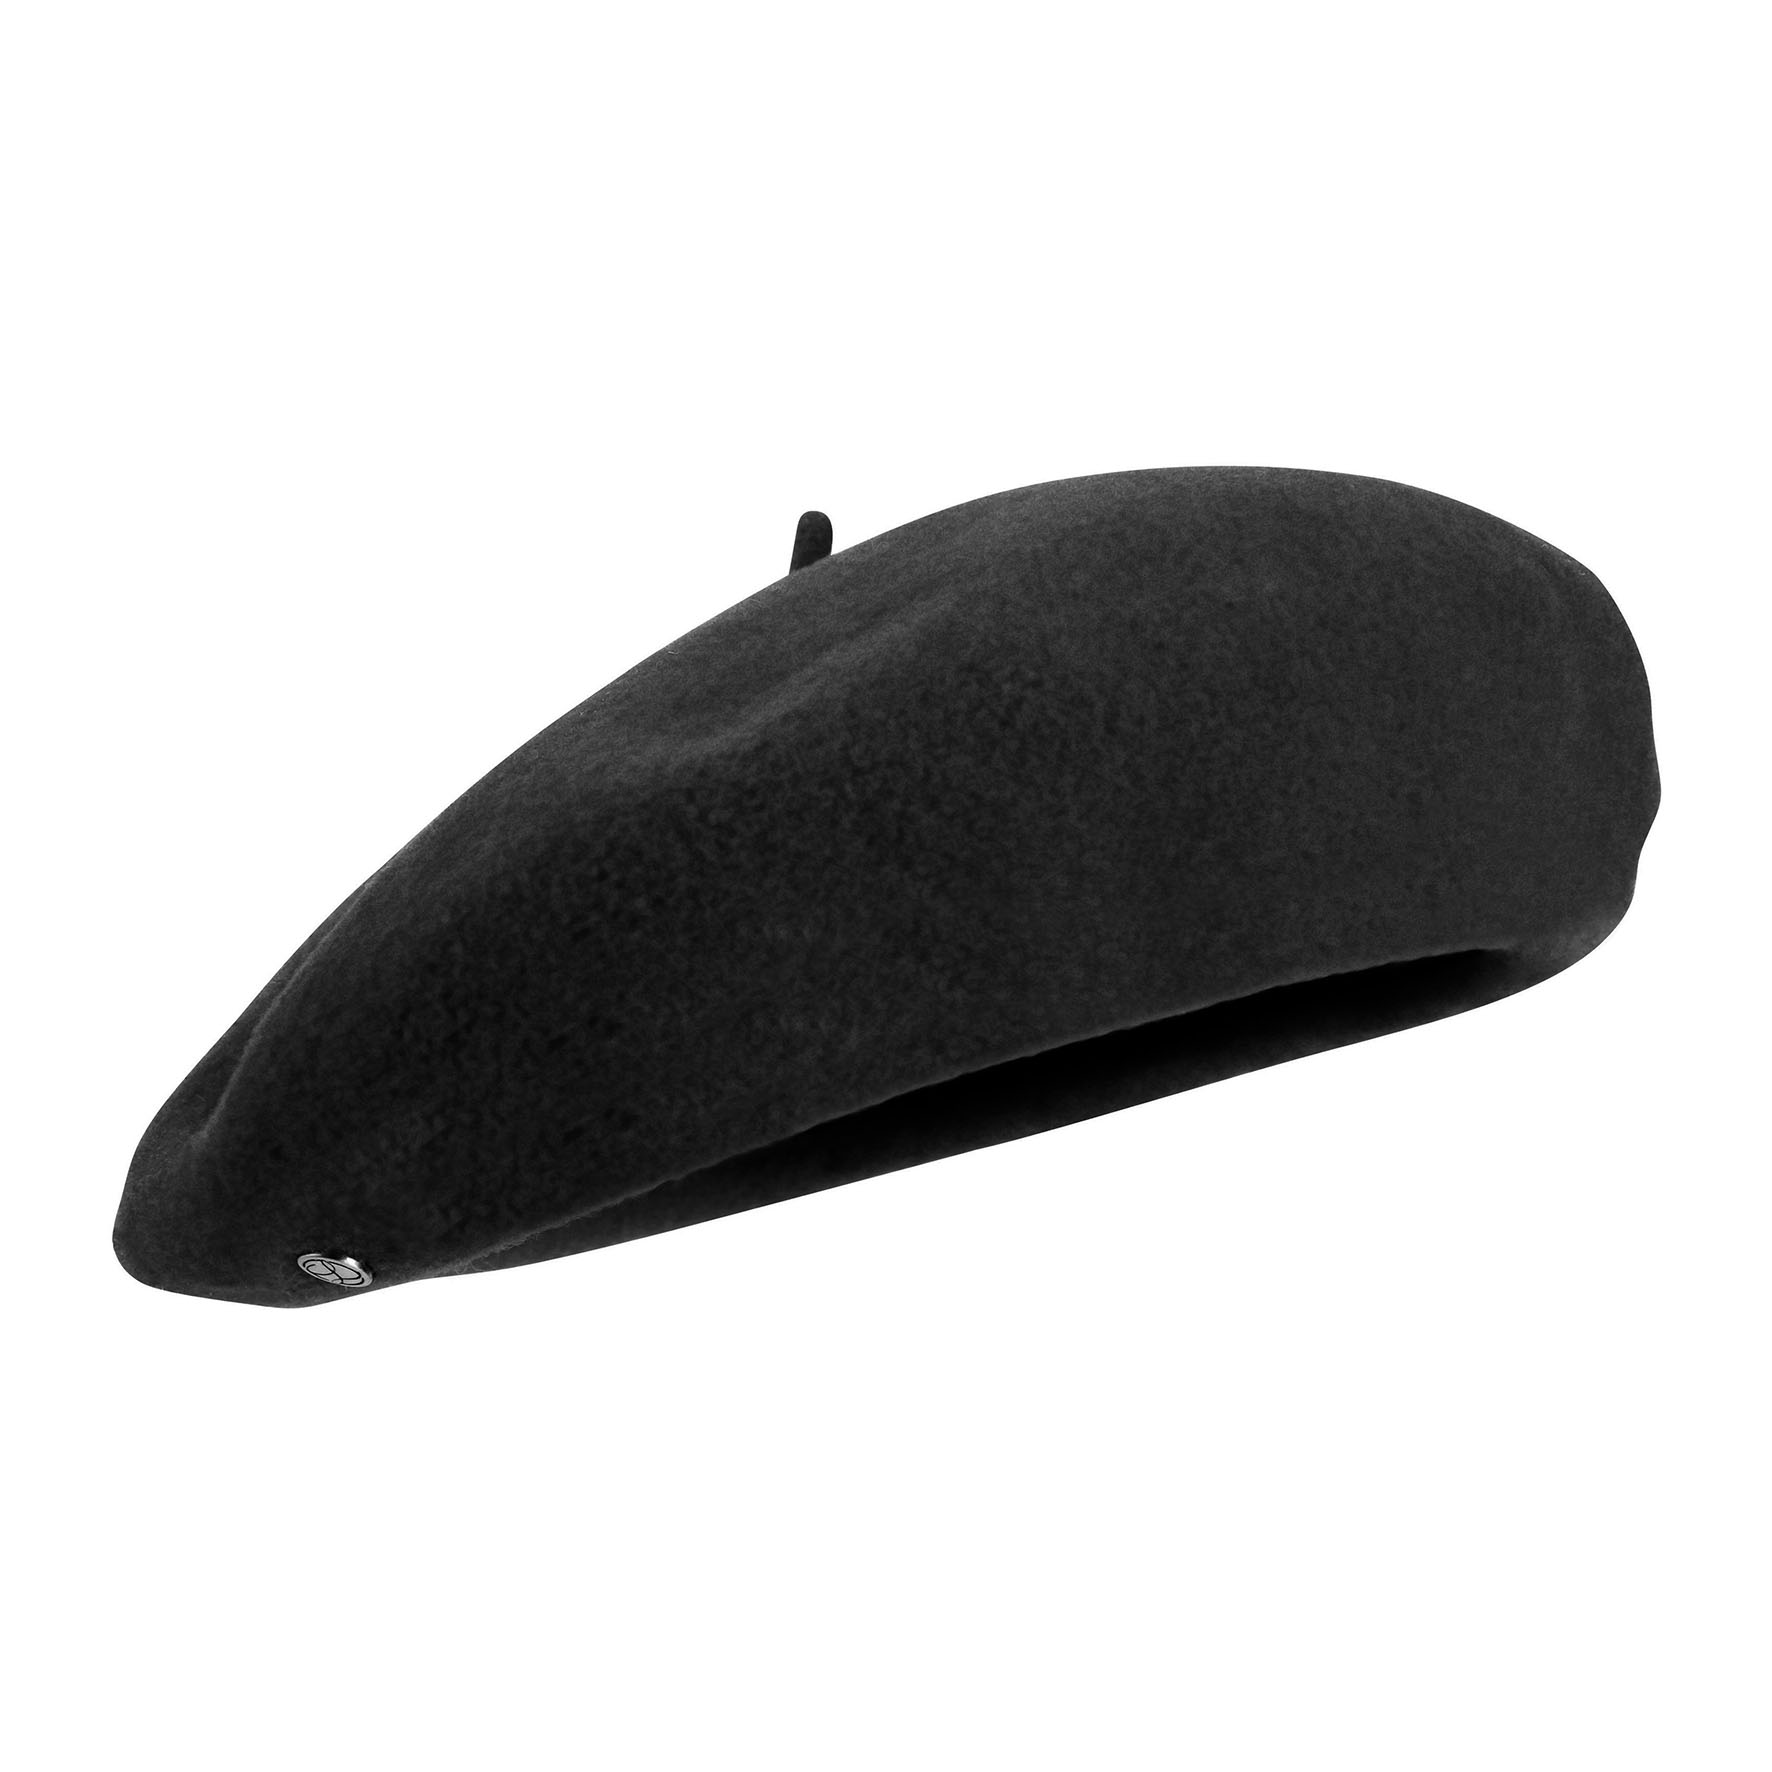 Laulhère Beret Authentique Black